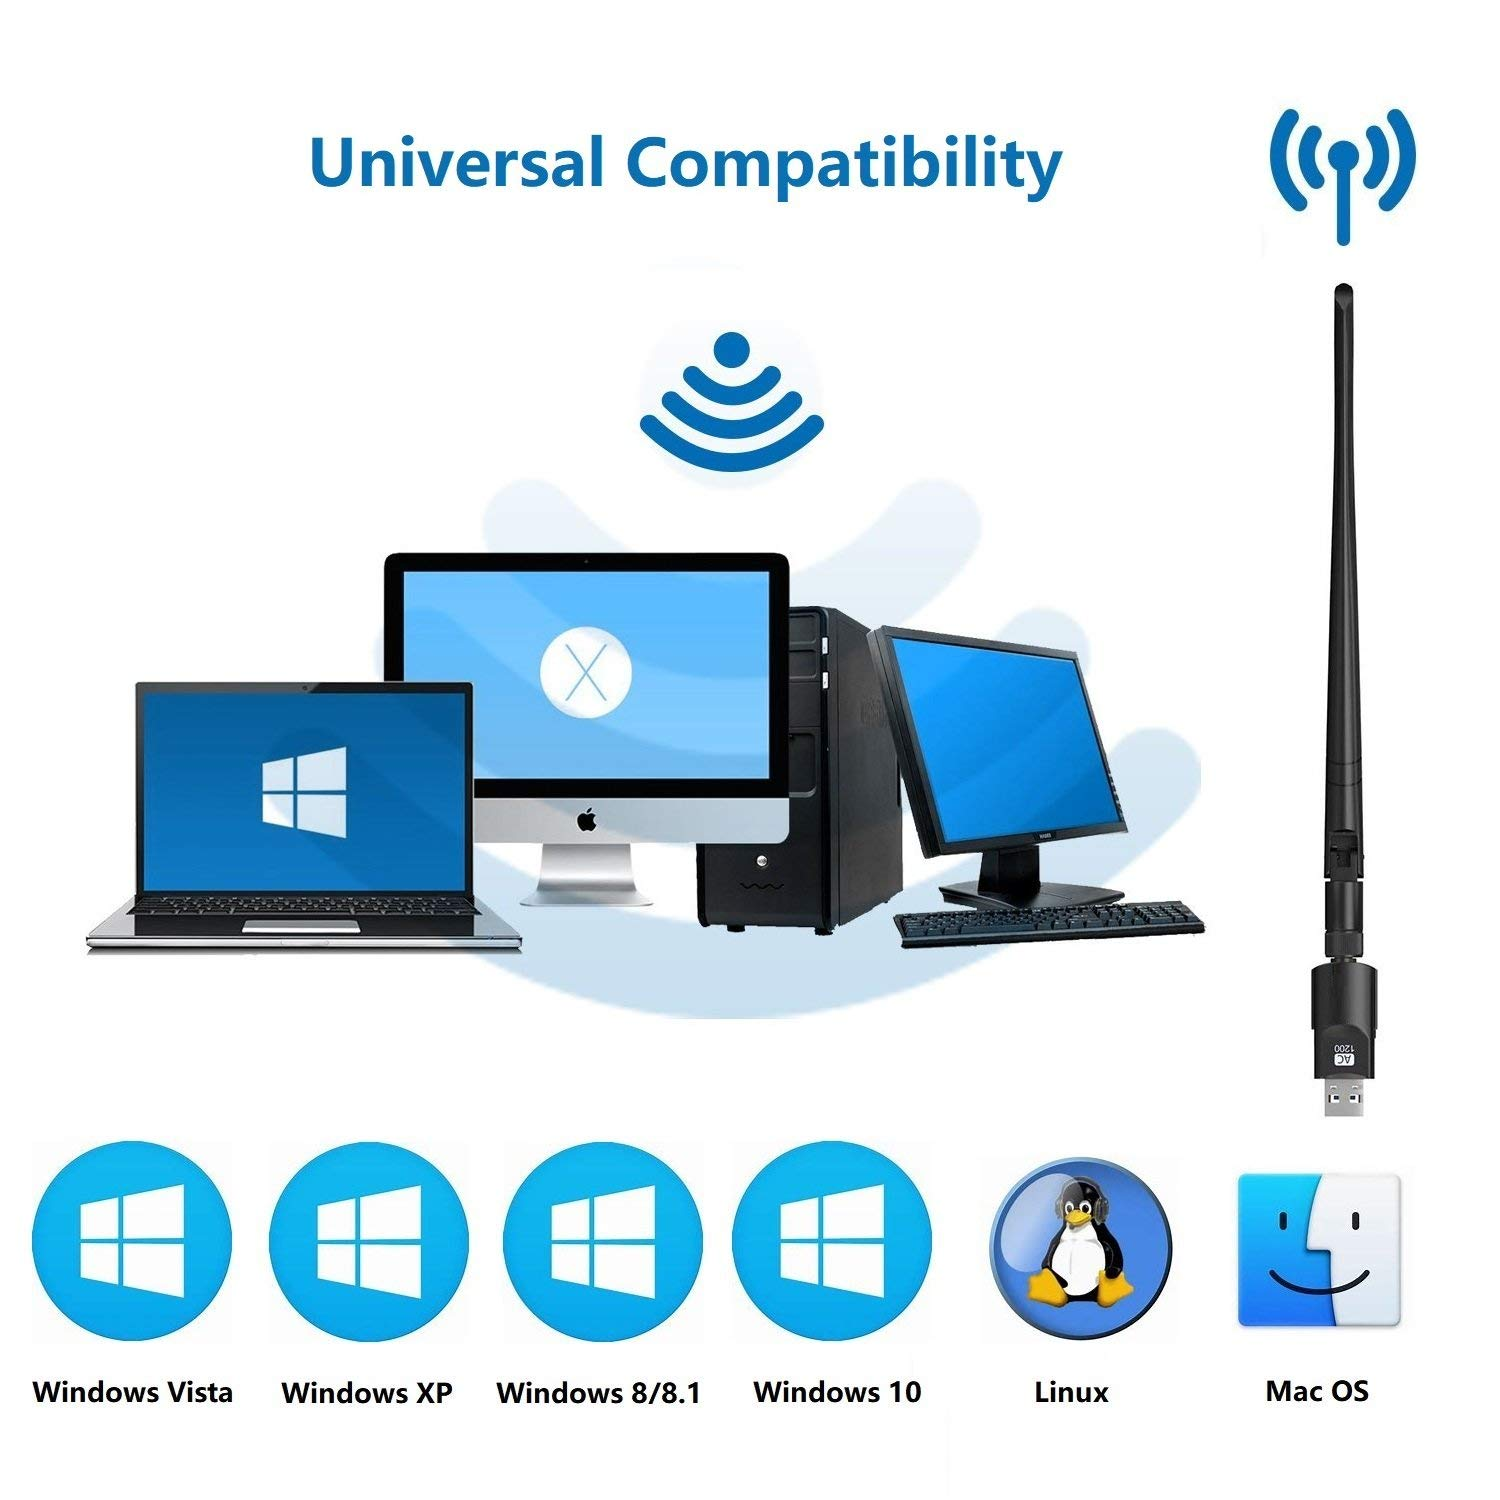 Support Windows Linux Mac OS Golvery WiFi Adapter 1200Mbps Gigabit USB WiFi Dongle Dual Band 2.4GHz+5GHz Ultra-Speed 802.11ac Network WiFi Dongle with 5dBi Antenna for Desktop PC Laptop